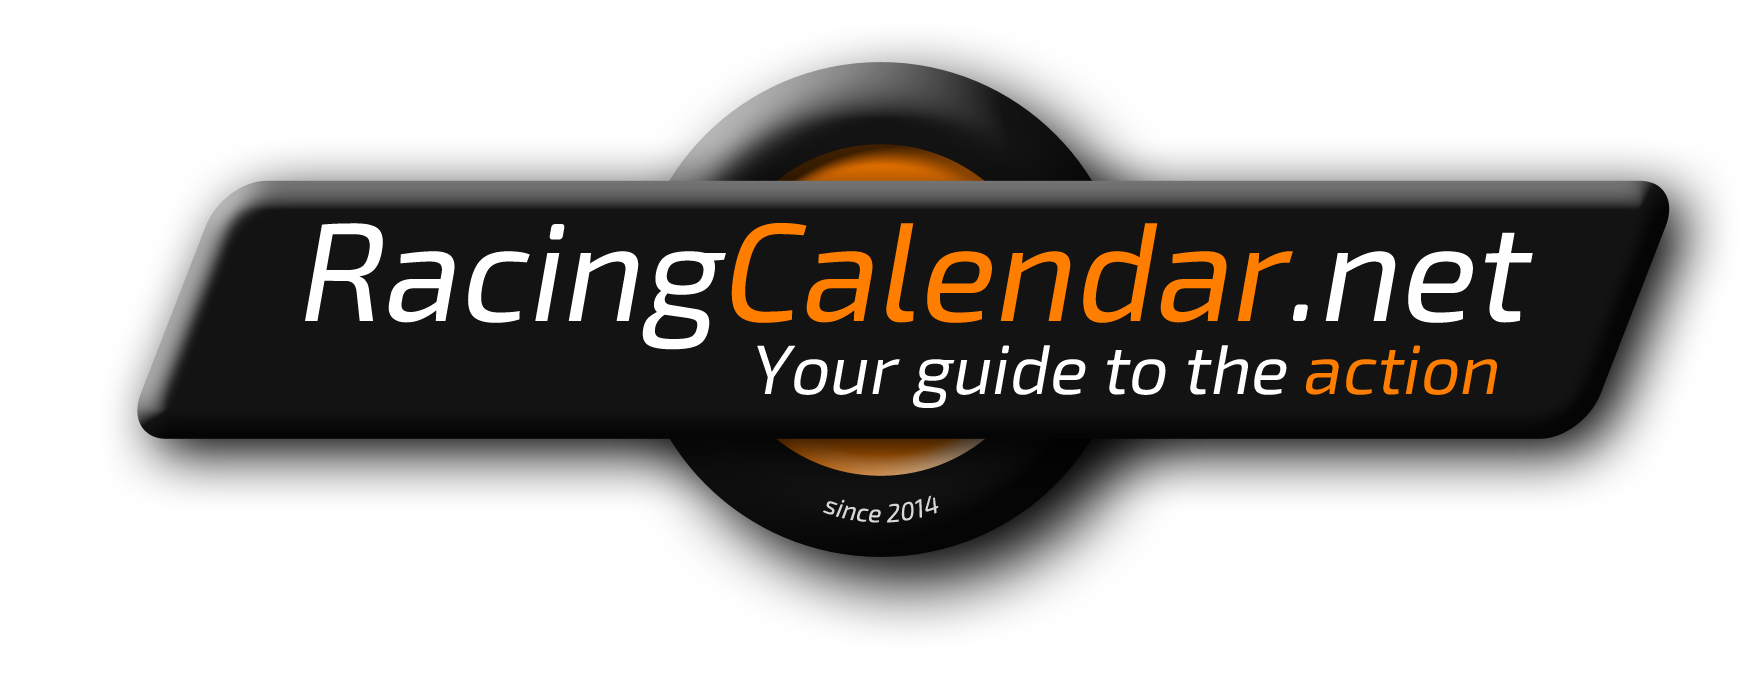 RacingCalendar.net – Your guide to the action